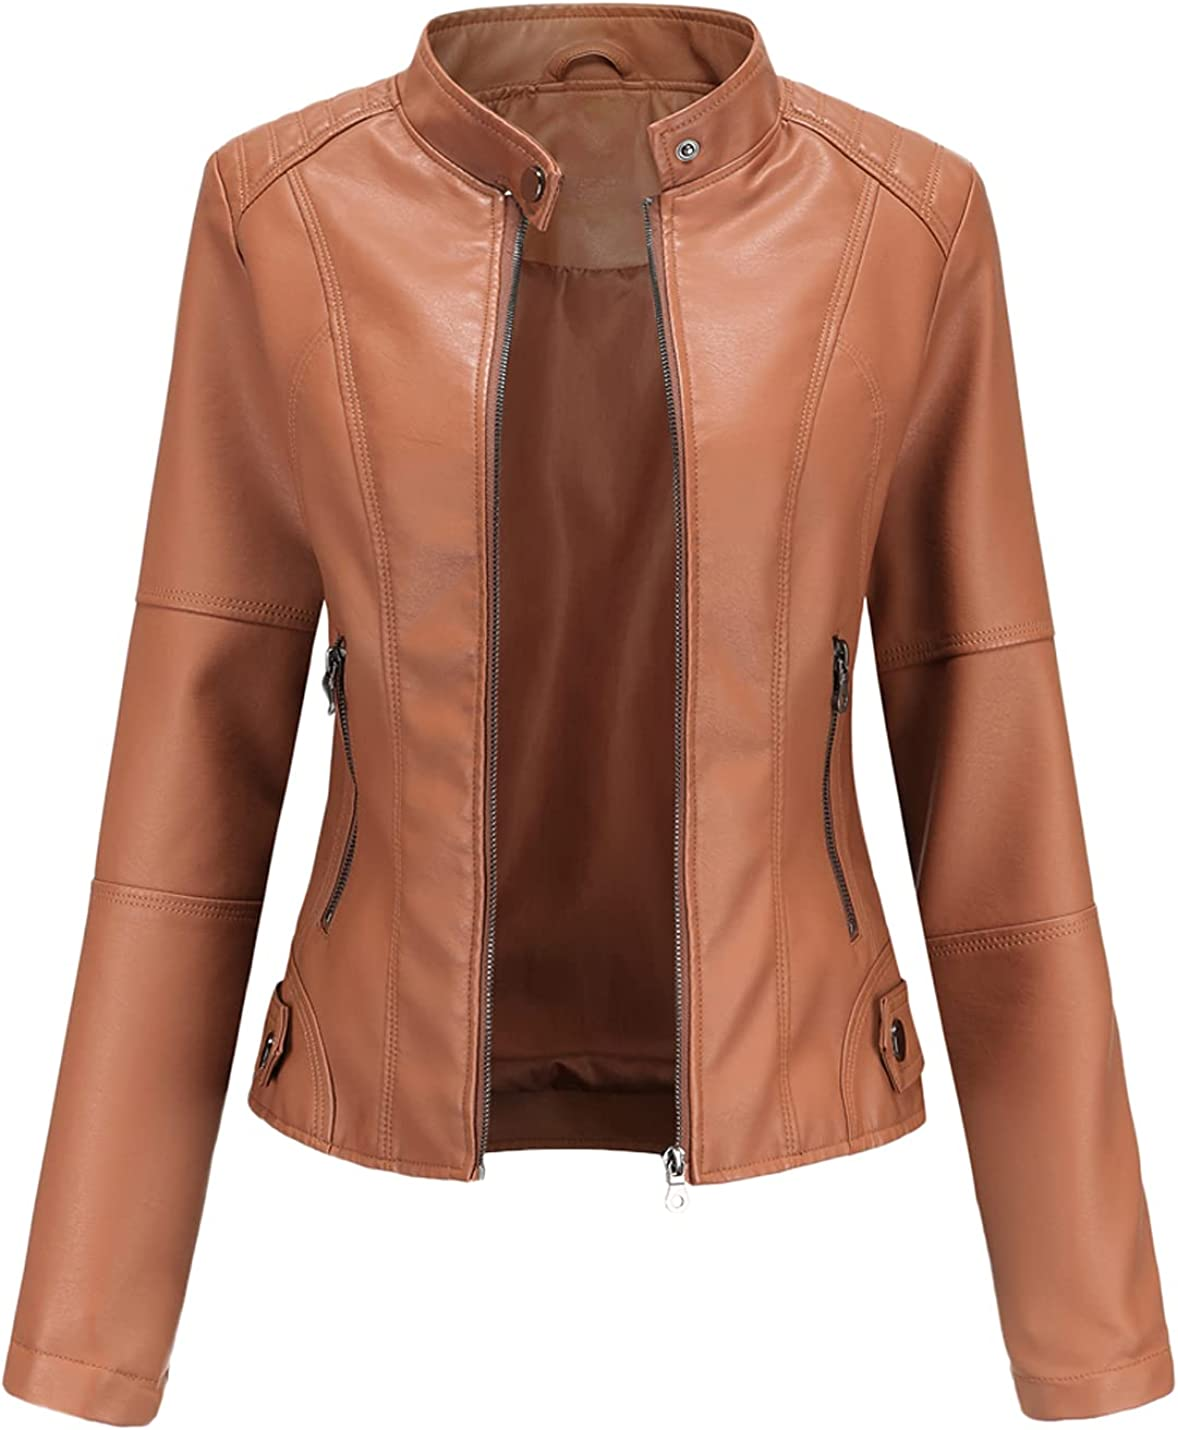 Peaceglad Womens Zip Up Steampunk Gothic Faux Leather Moto Biker Jackets Coat with Pockets